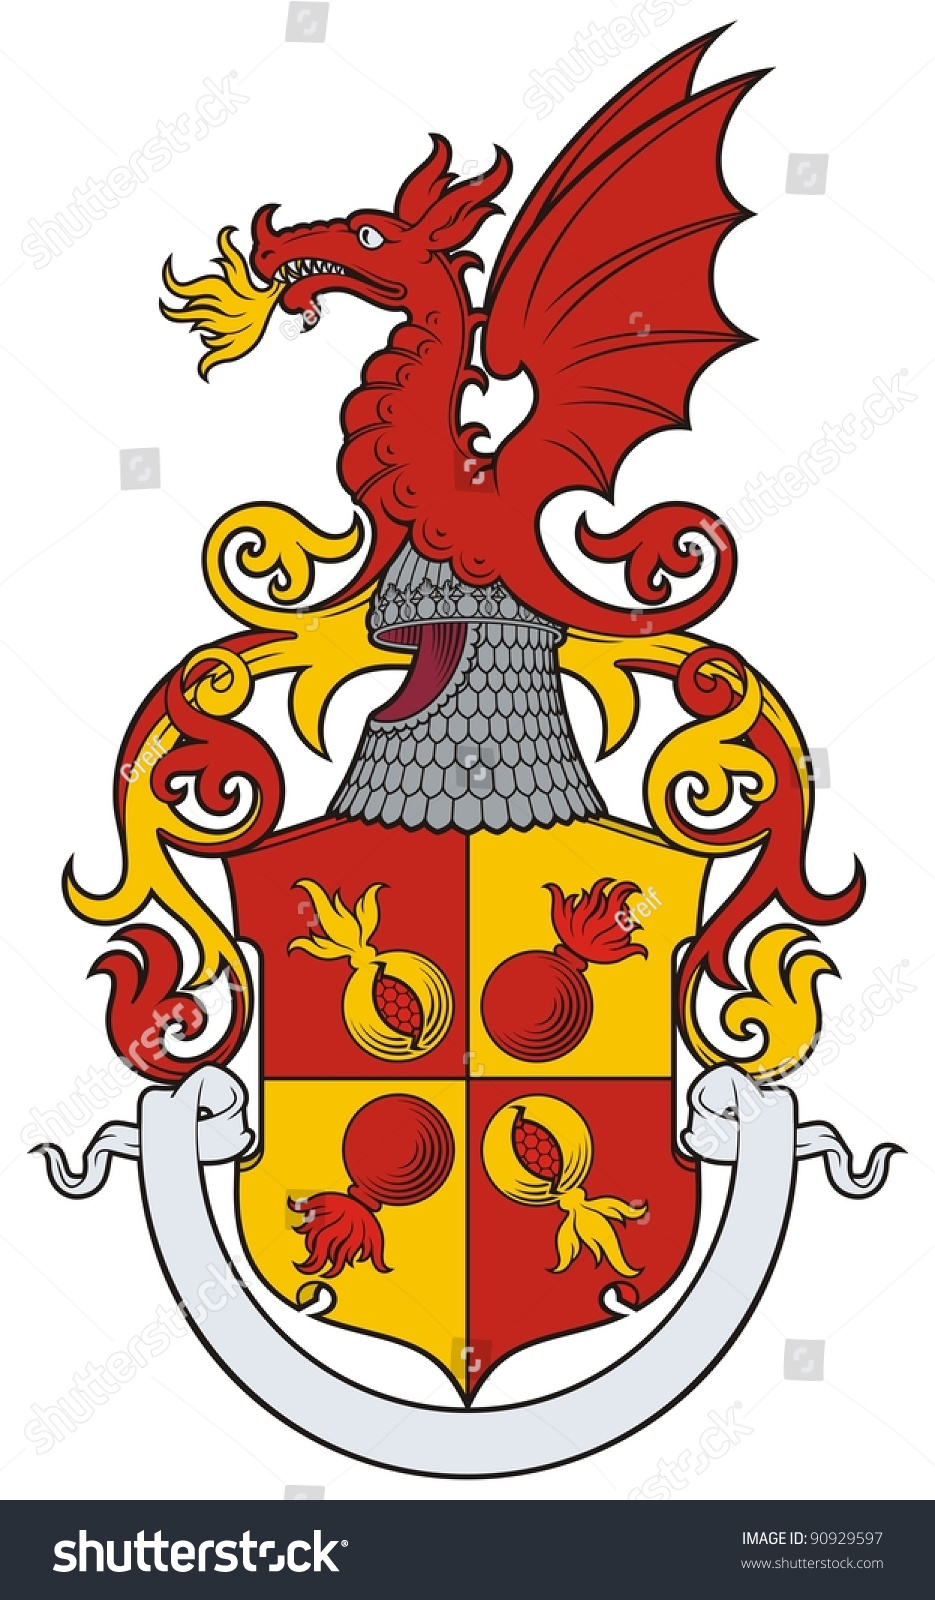 Dragon Heraldry: The Arms With A Grenade, A Pomegranate And A Dragon In